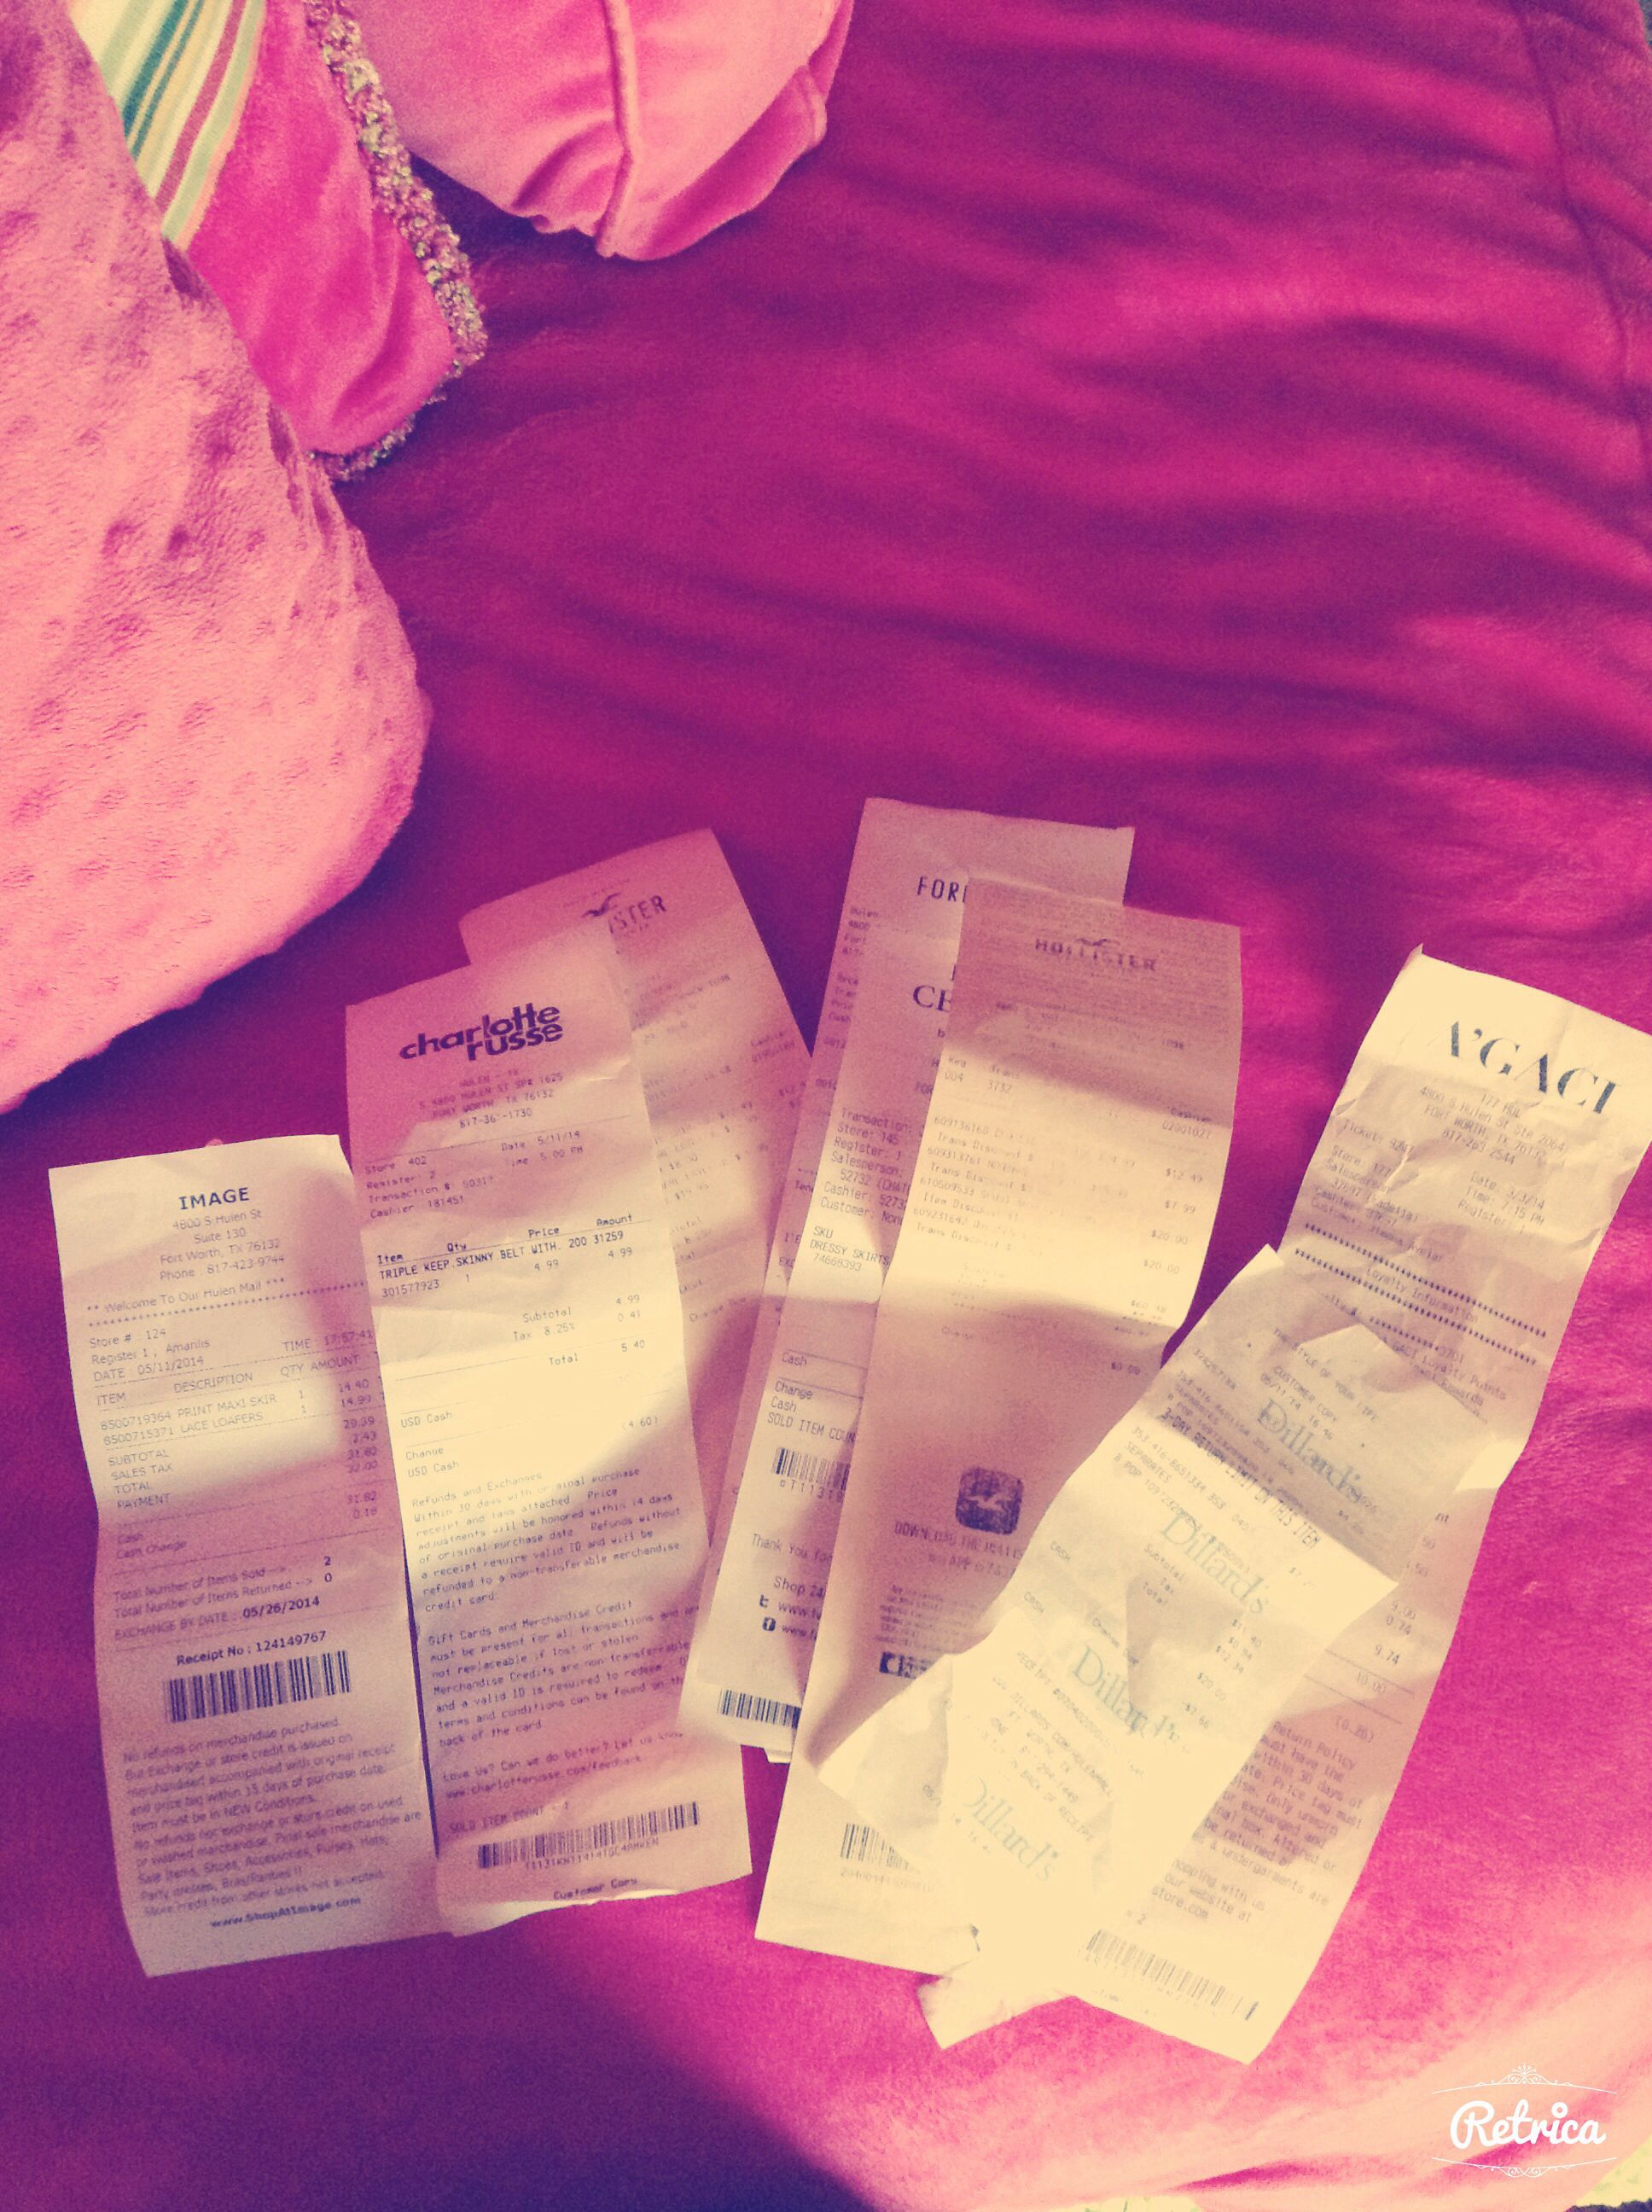 So i find a bunch of receipts from my last shopping spree ^_^ aha